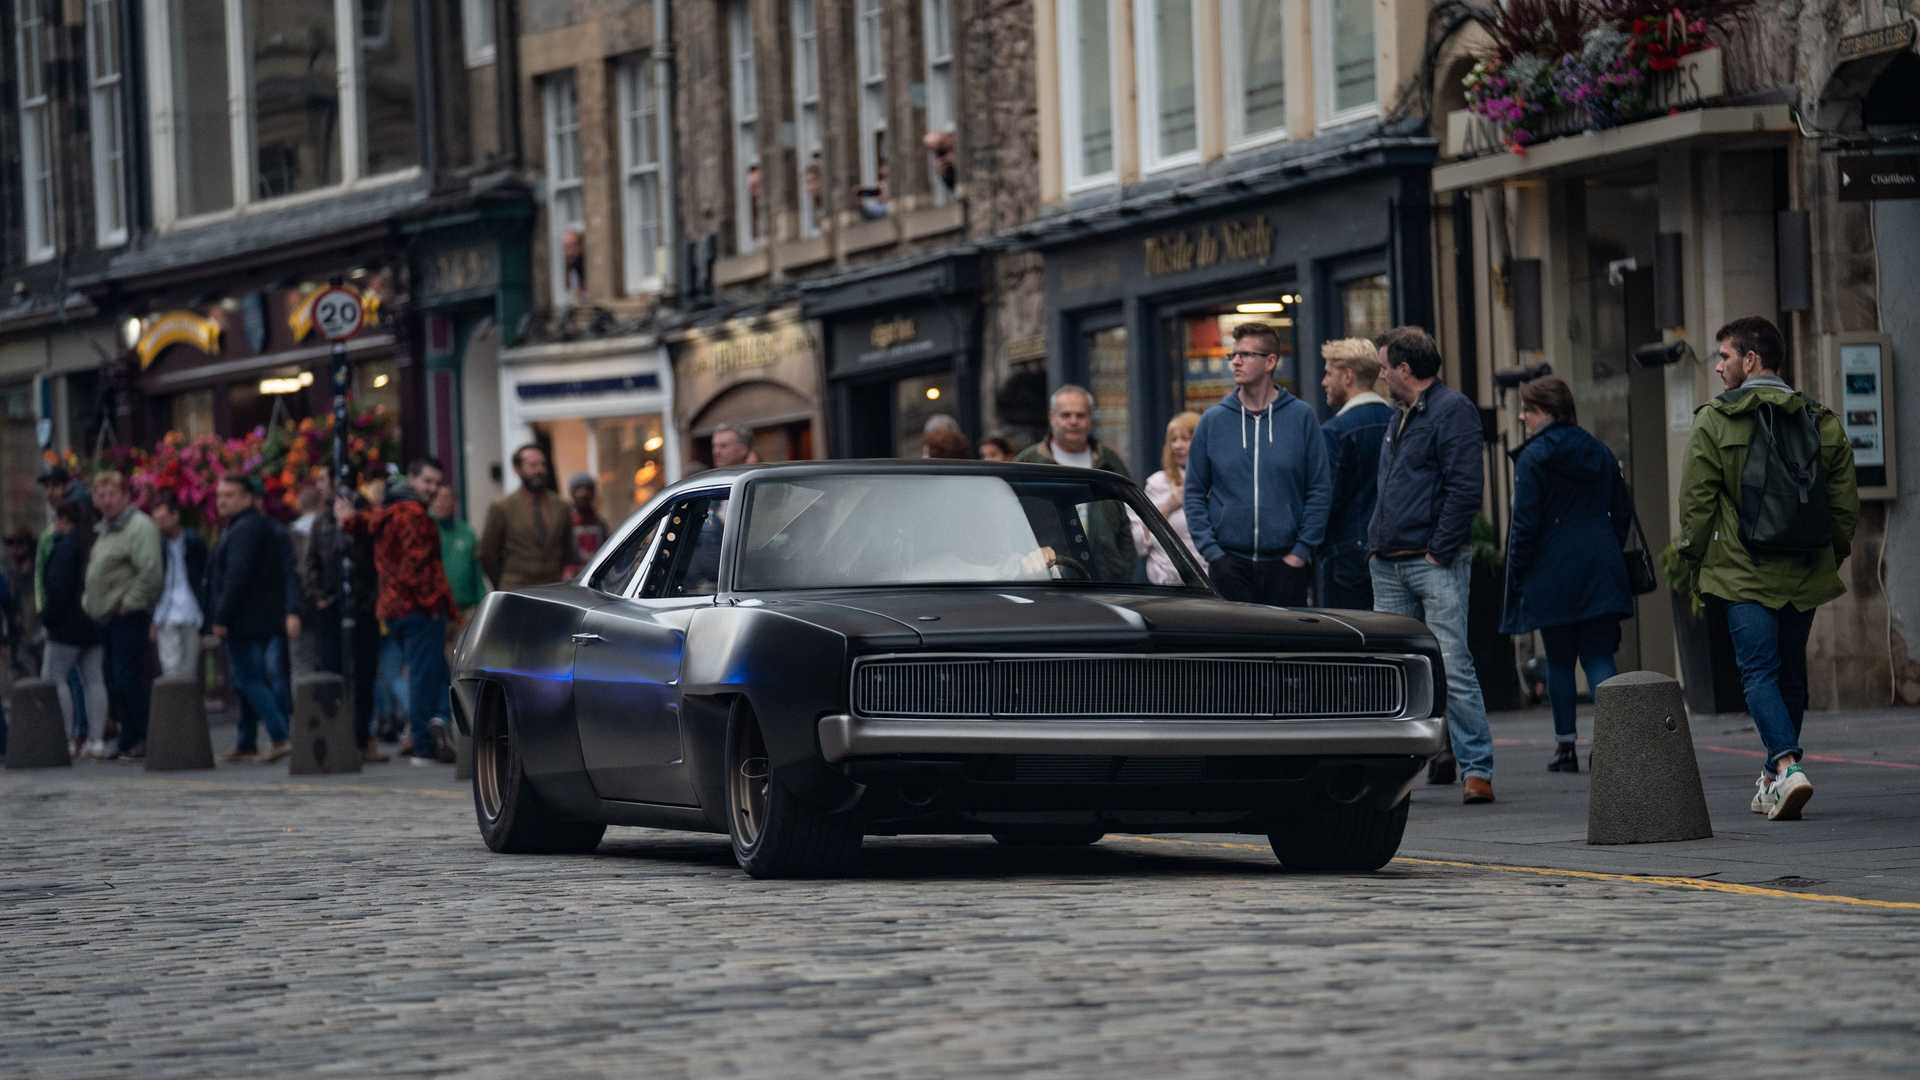 dom-s-mid-engine-1968-dodge-charger-with-people